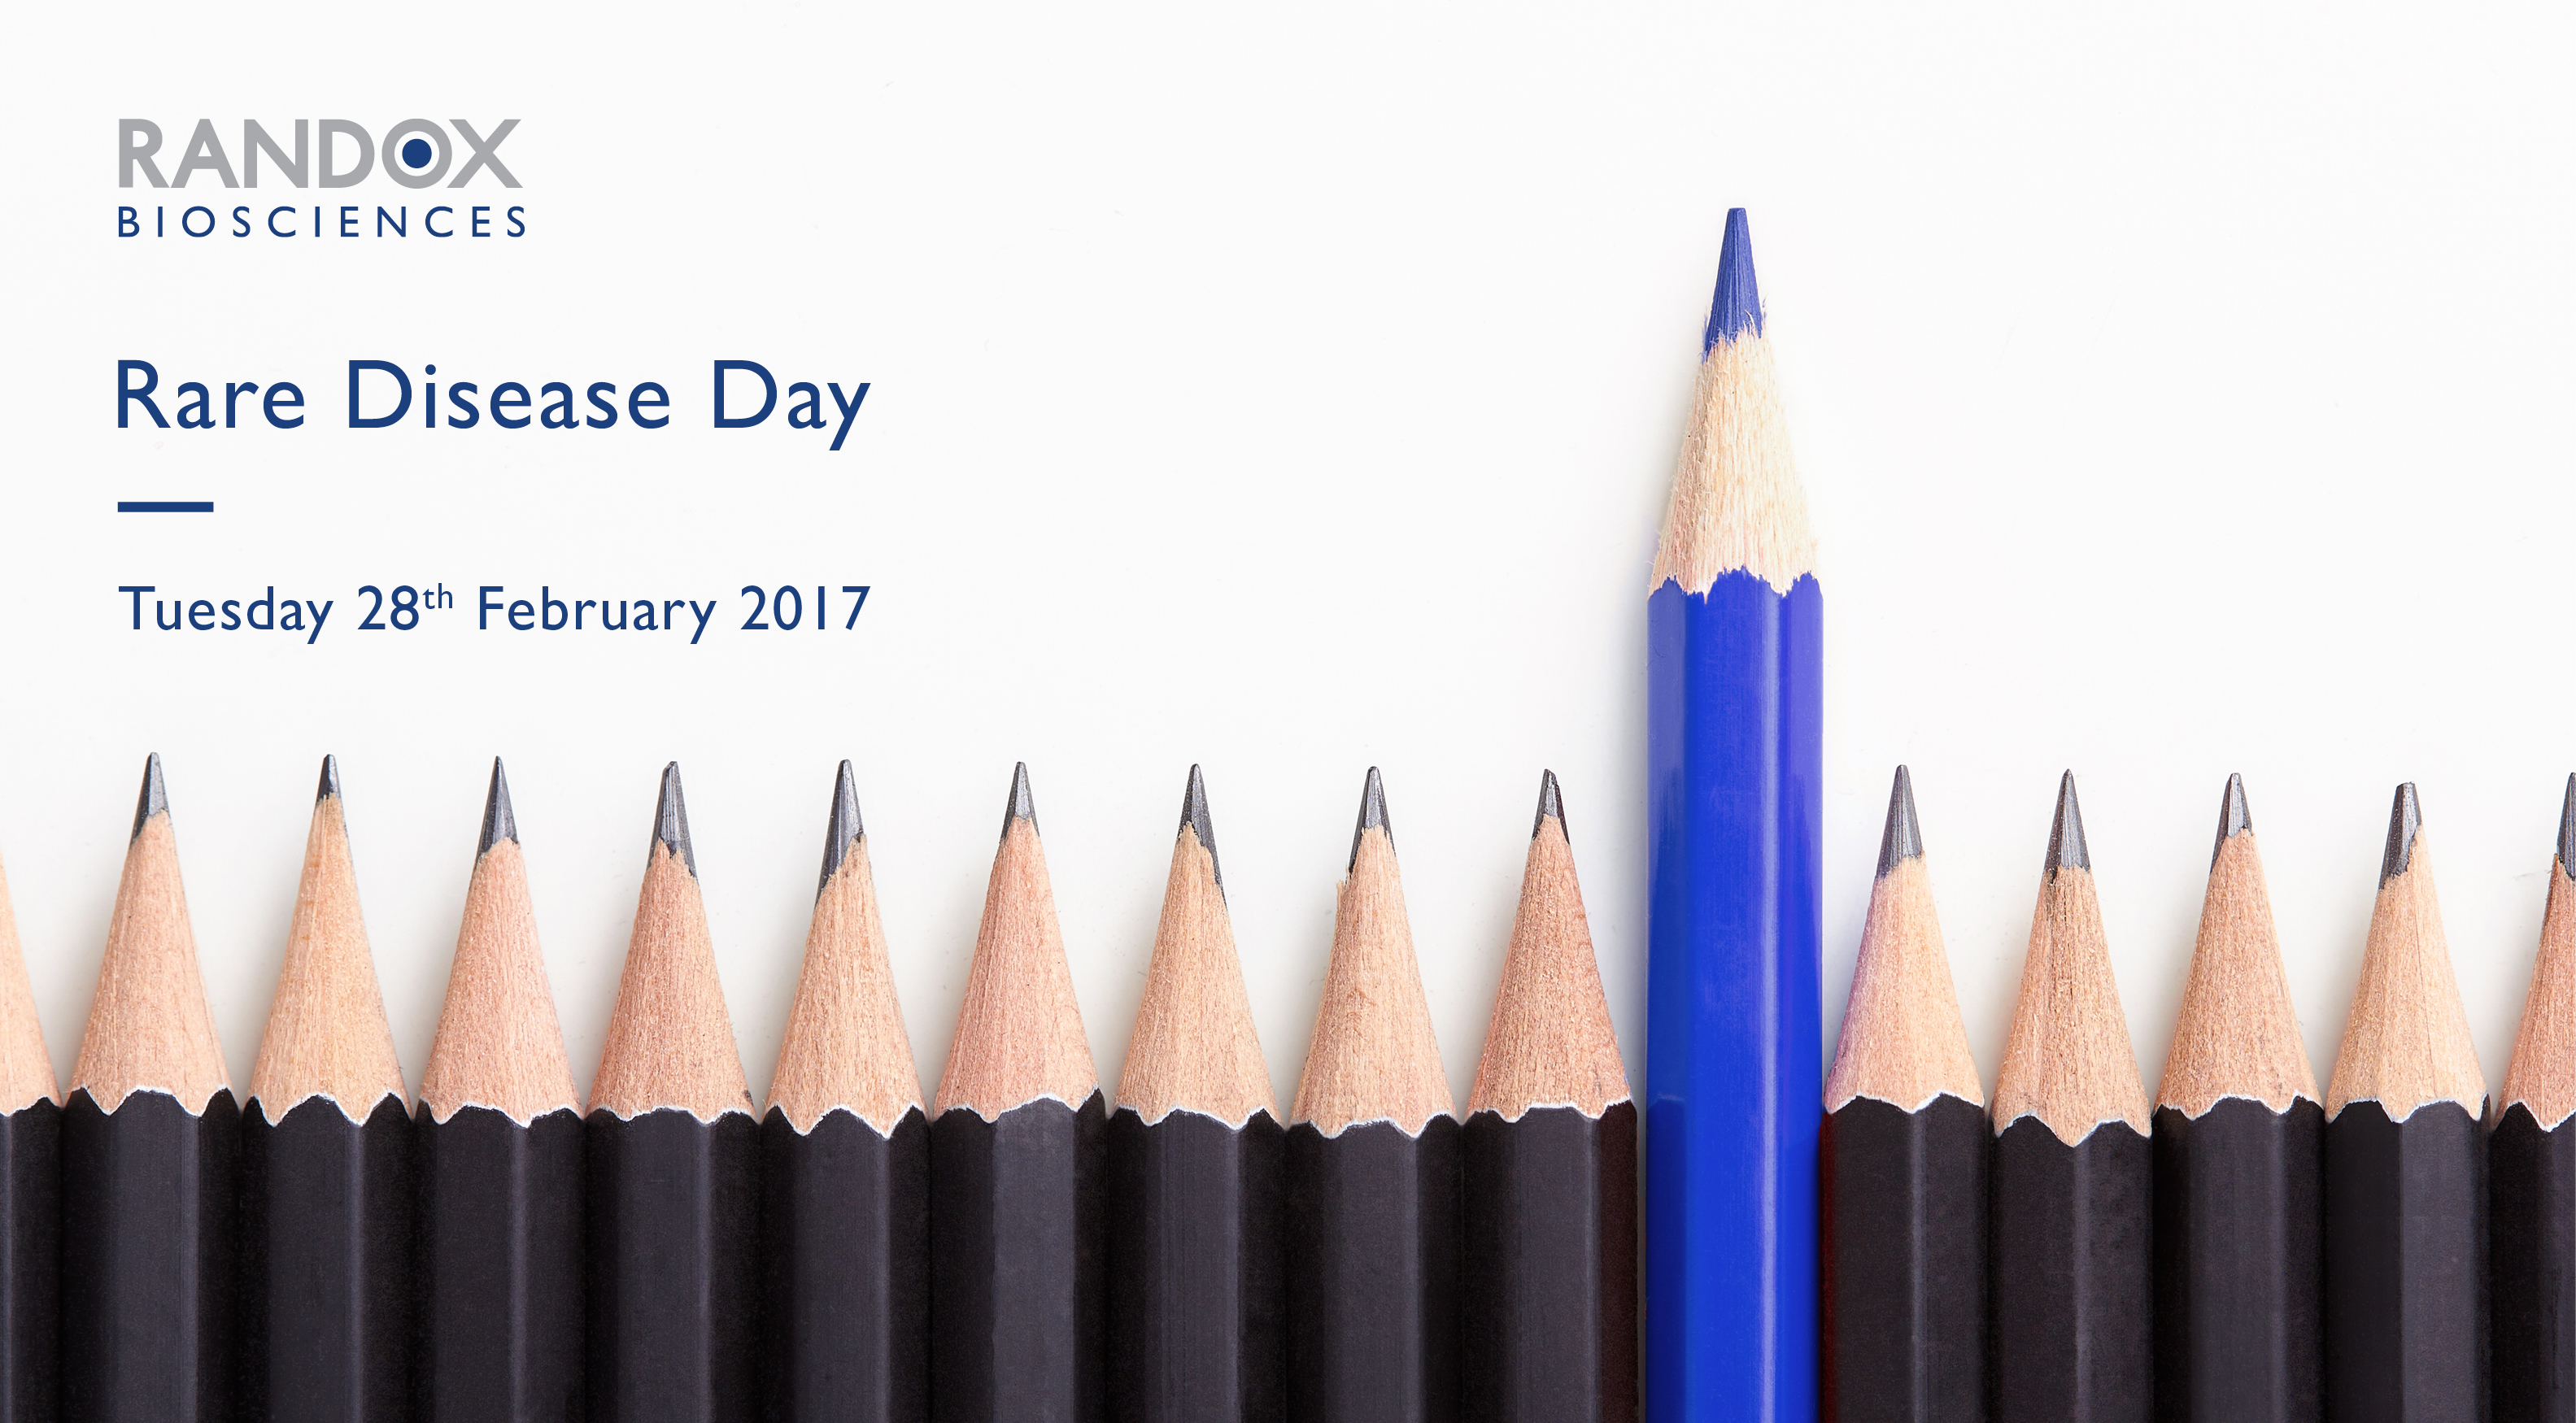 rare disease day randox biosciences 28th february 2017